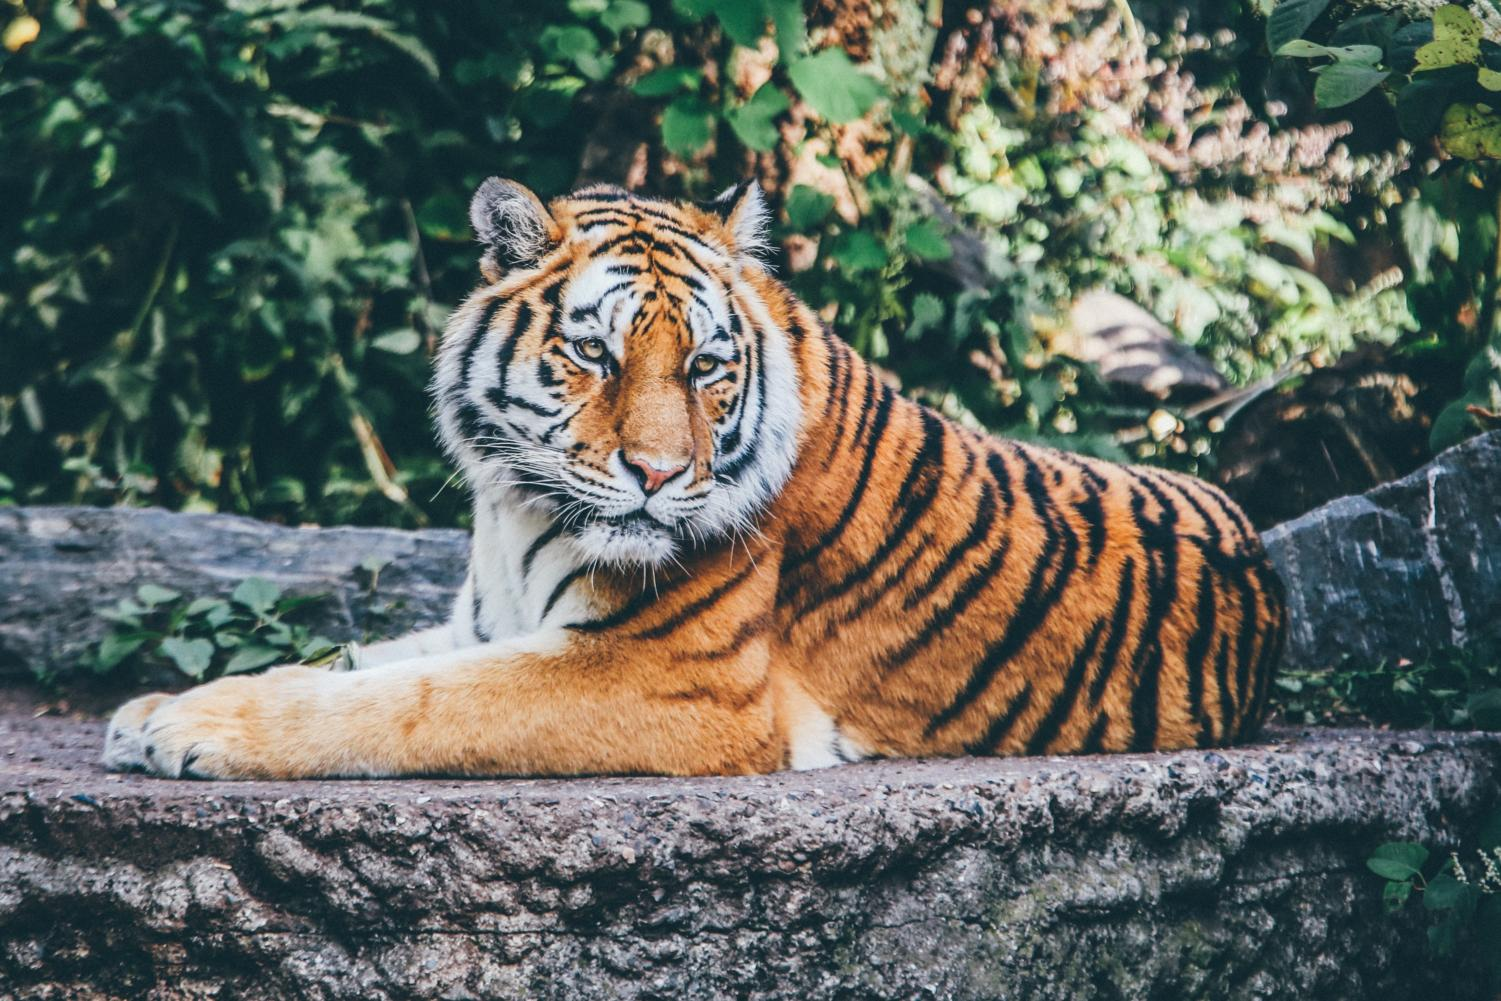 Also known as the Panthera tigris tigris, the Bengal Tiger is endangered with only about 2,500 tigers remaining. Labeled for reuse by Unsplash